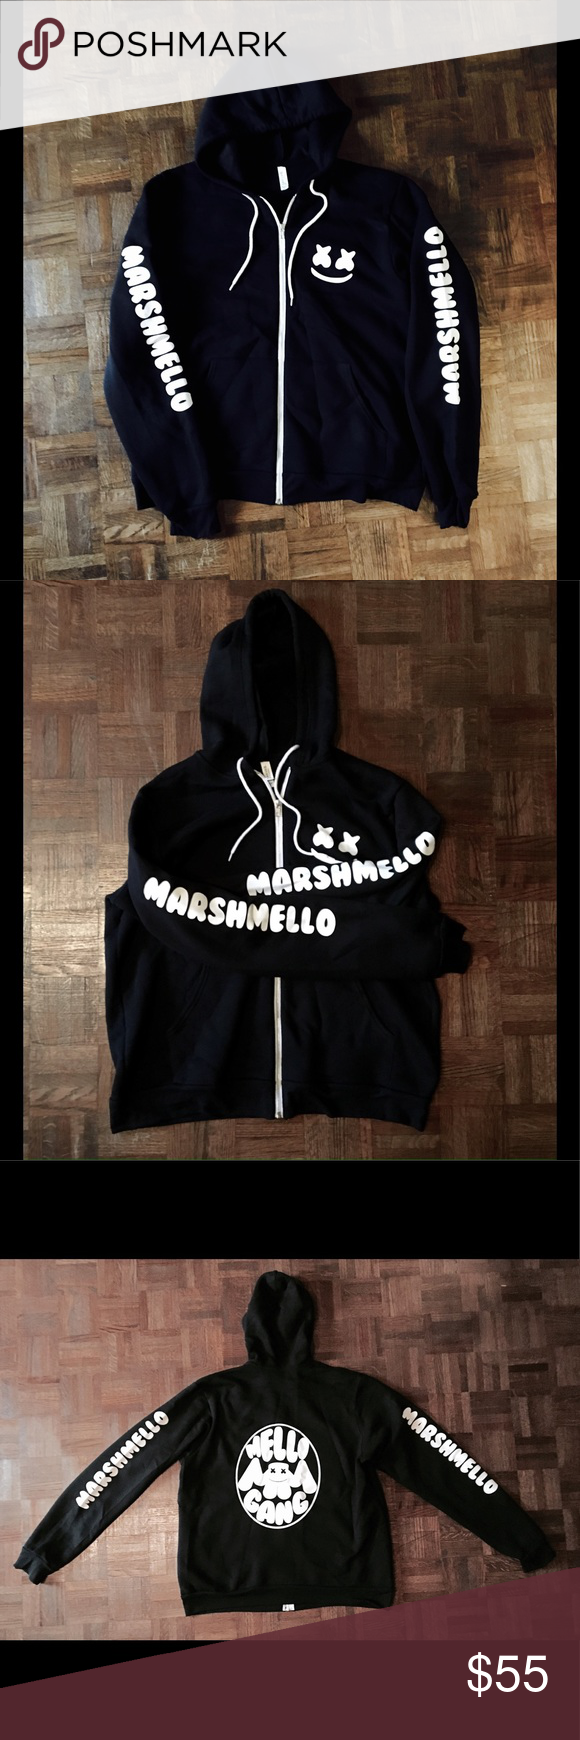 Marshmello Mellogang Black White Hoodie Boutique In 2018 Fashion Tendencies Kaos Japanese City Hitam Xl Custom High End Long Sleeve With Full Zipper Down Front A Pull String